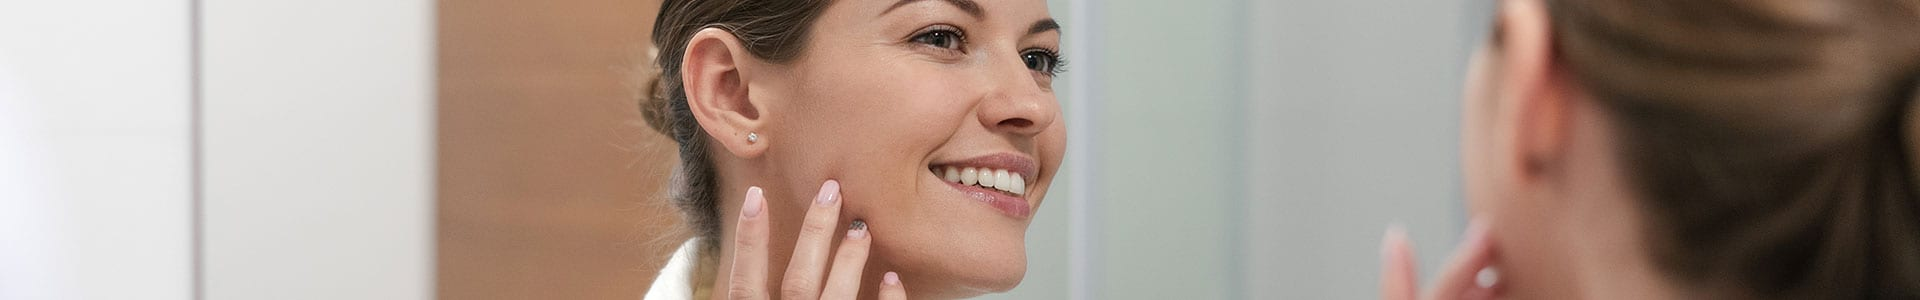 woman looking in the mirror at her skin smiling